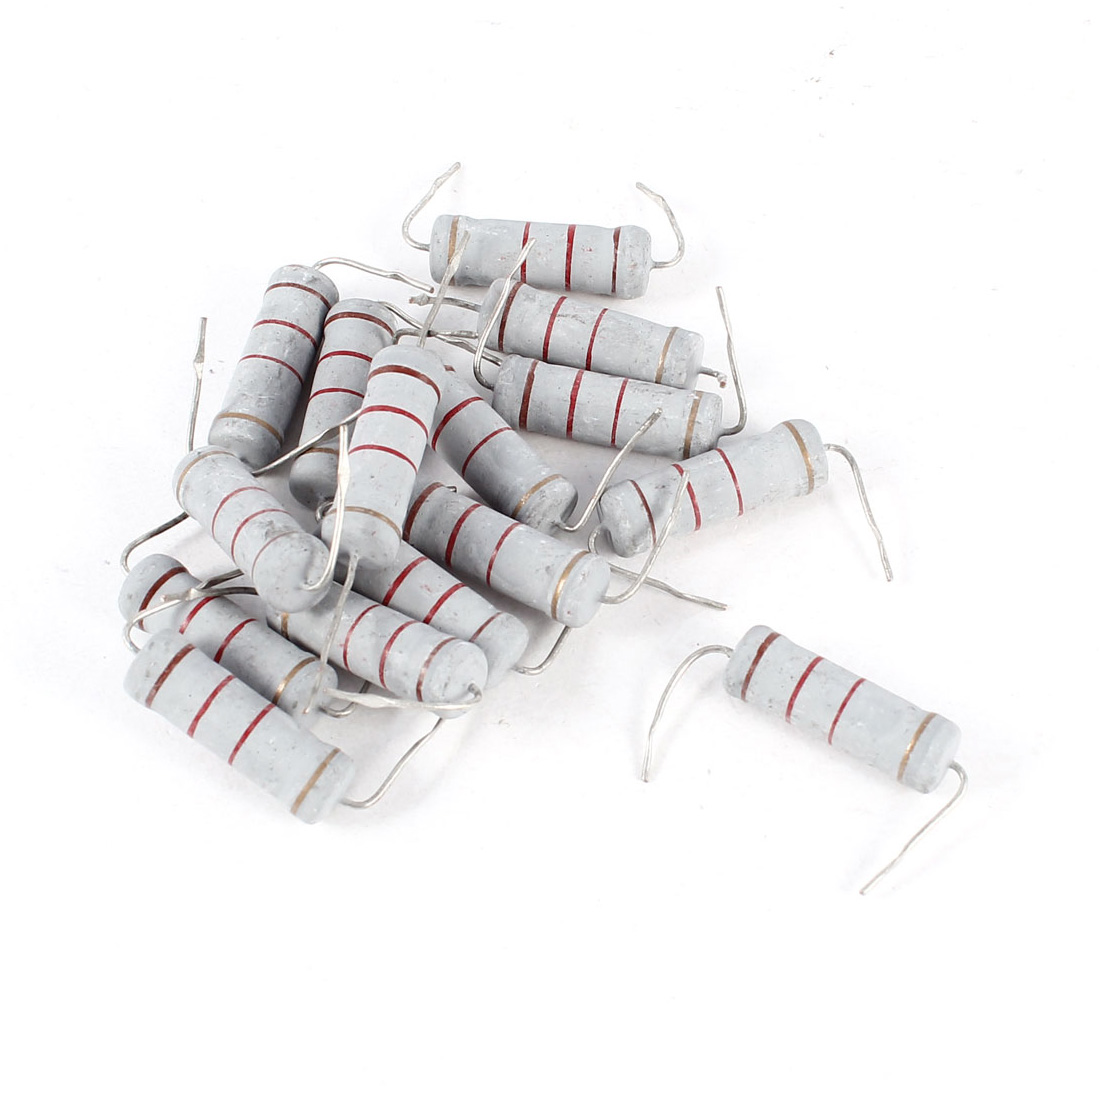 15 Pcs Axial Lead 1.2K Ohm 5W 5% Tolerence Metal Oxide Film Resistor Resistance